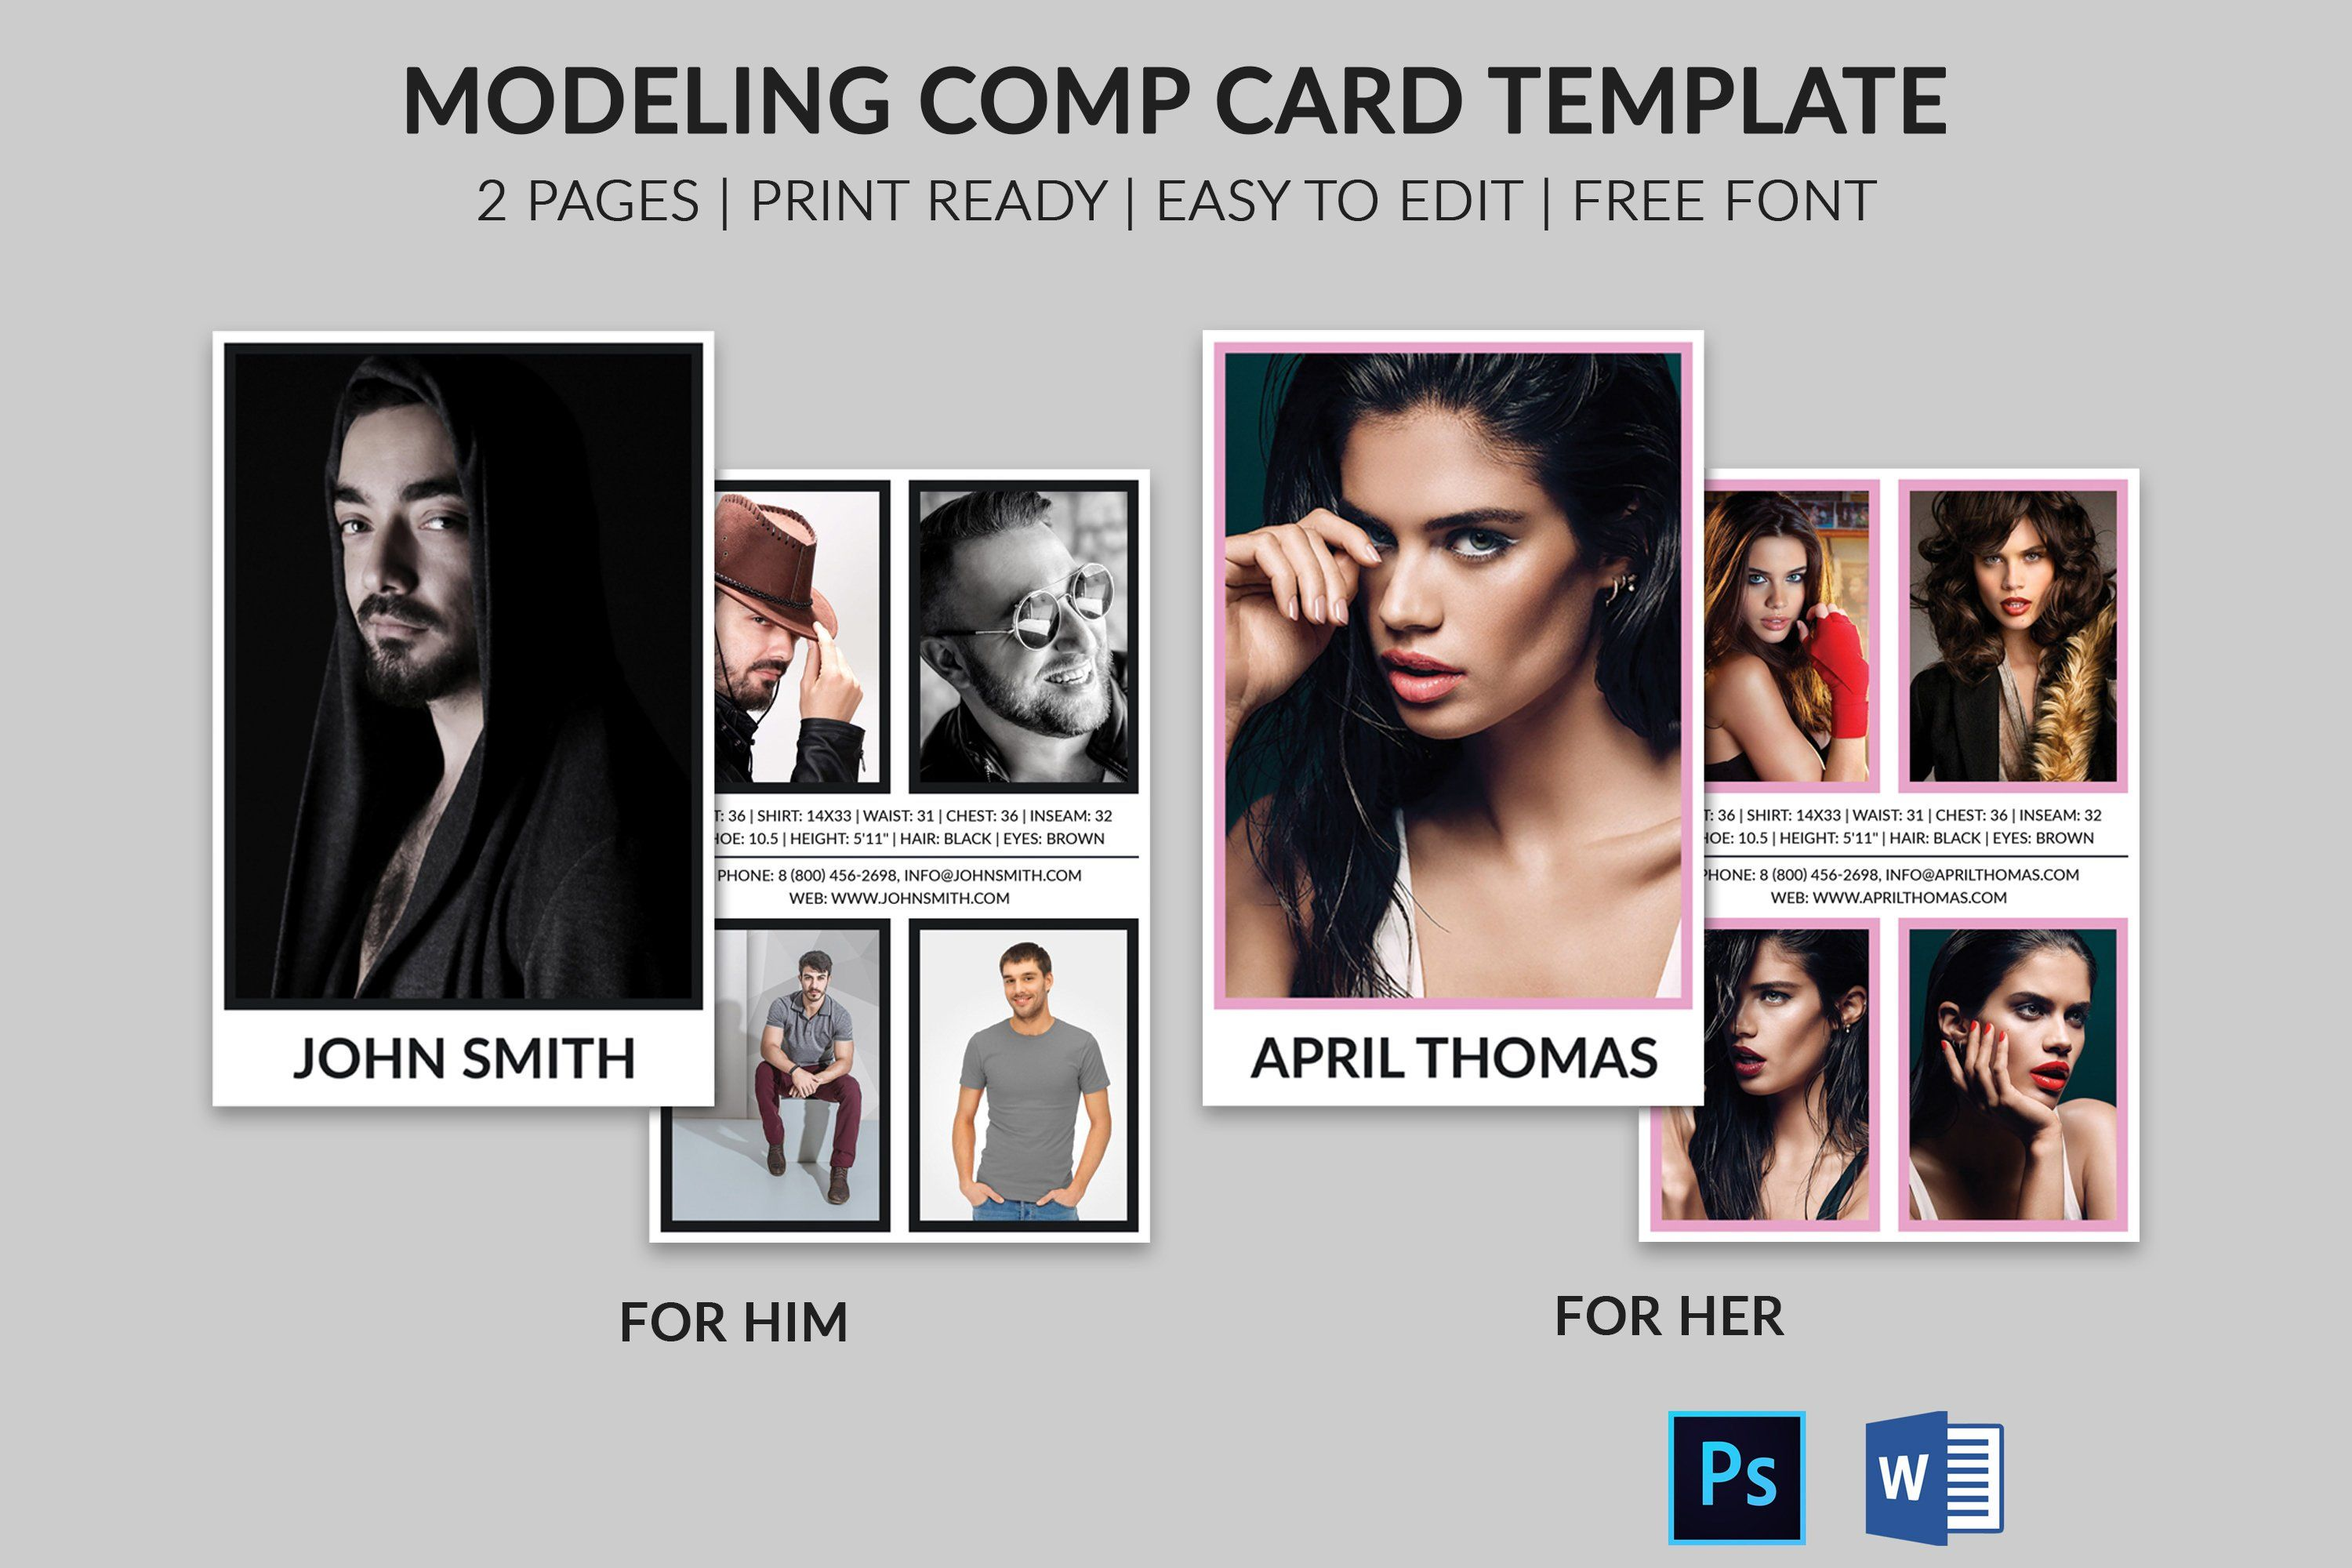 Modeling Comp Card Model Agency Zed Card Photoshop Ms Etsy Model Comp Card Card Template Card Templates Free